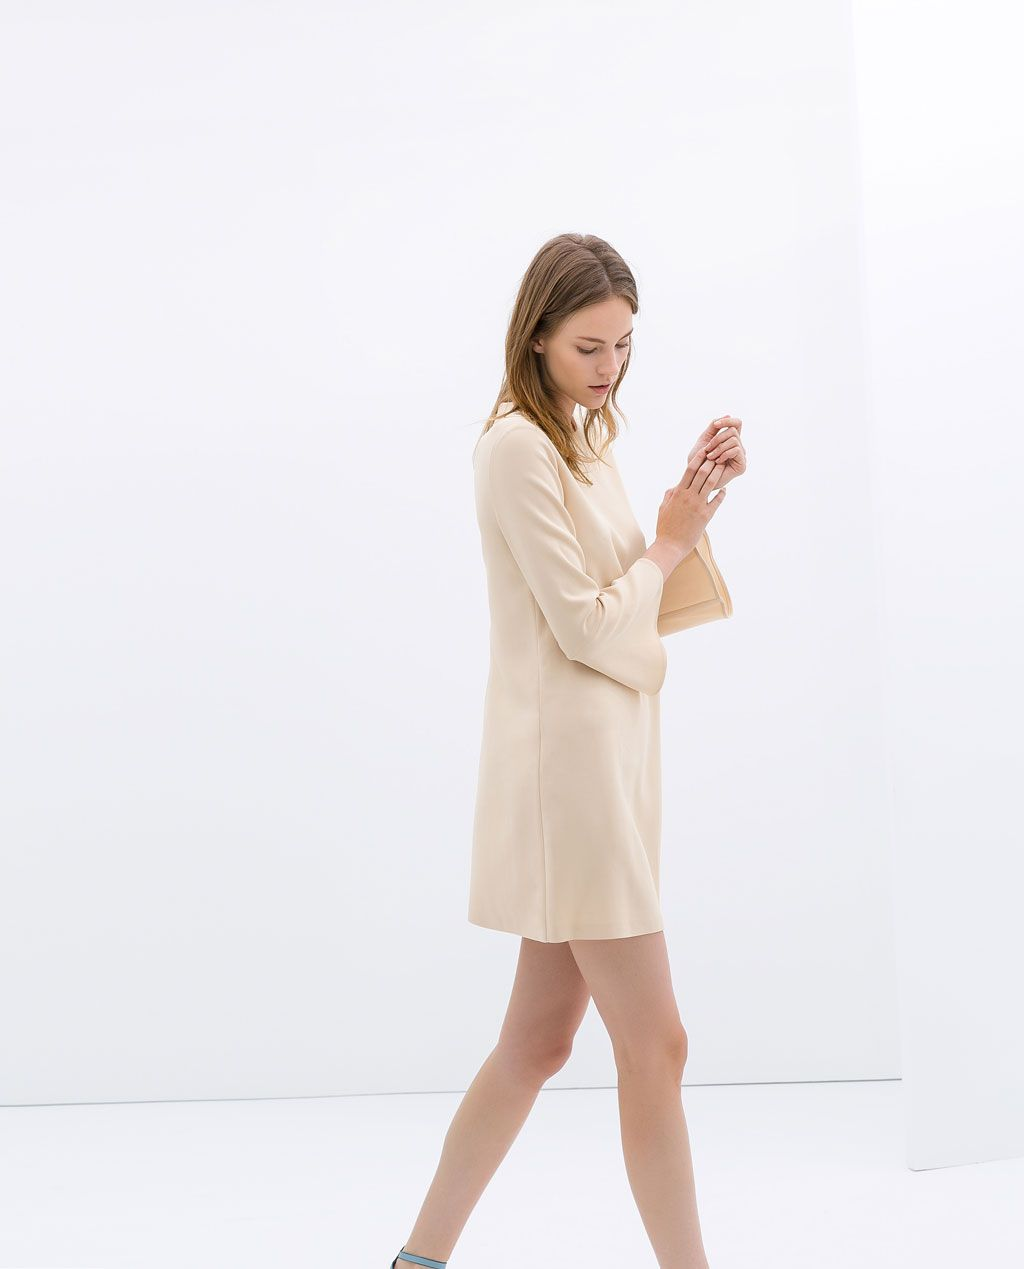 ZARA - SALE - Nude DRESS WITH BELL SLEEVES